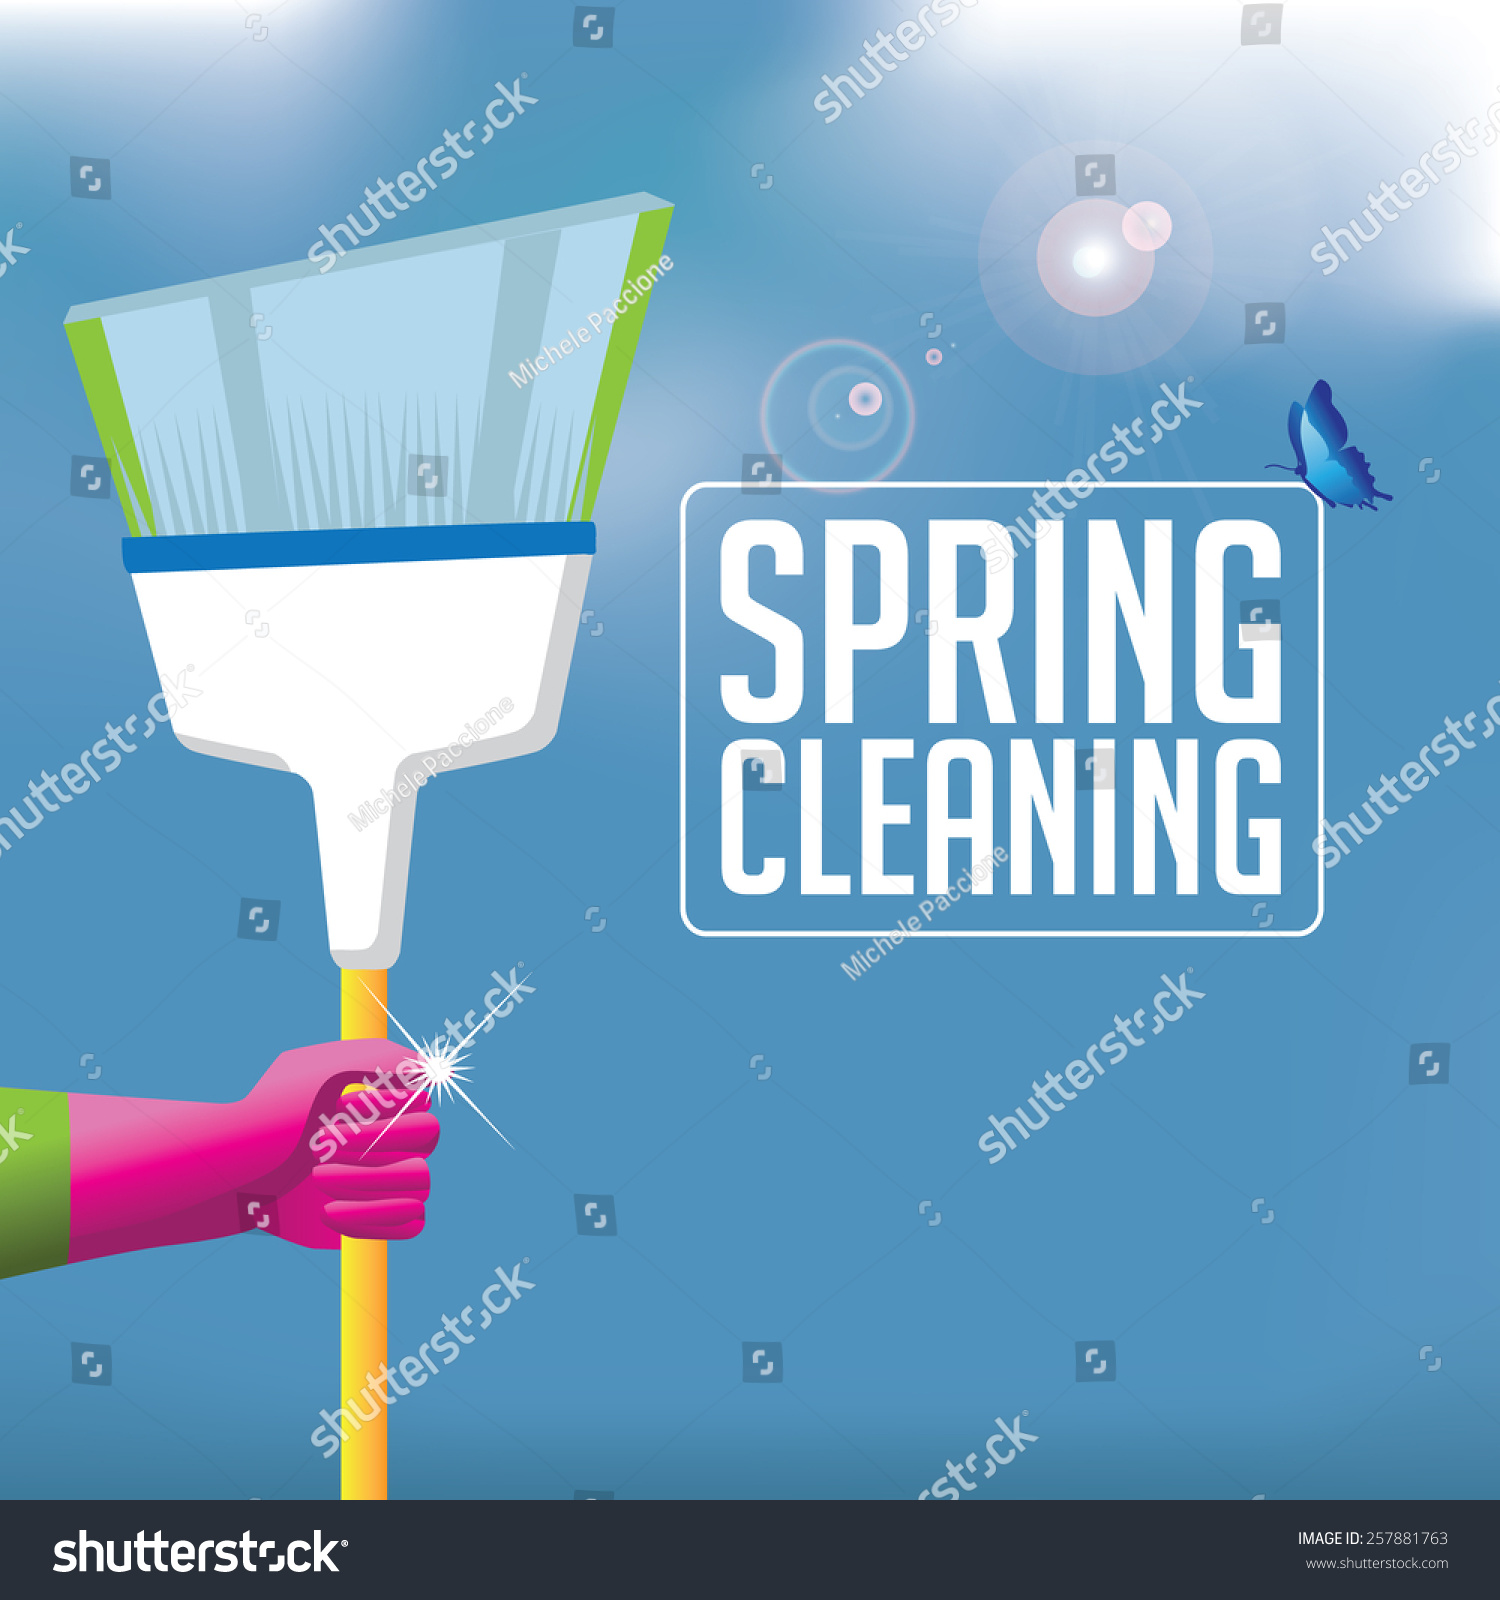 spring cleaning broom background eps stock vektorgrafik spring cleaning broom background eps 10 vector royalty stock illustration for ad promotion